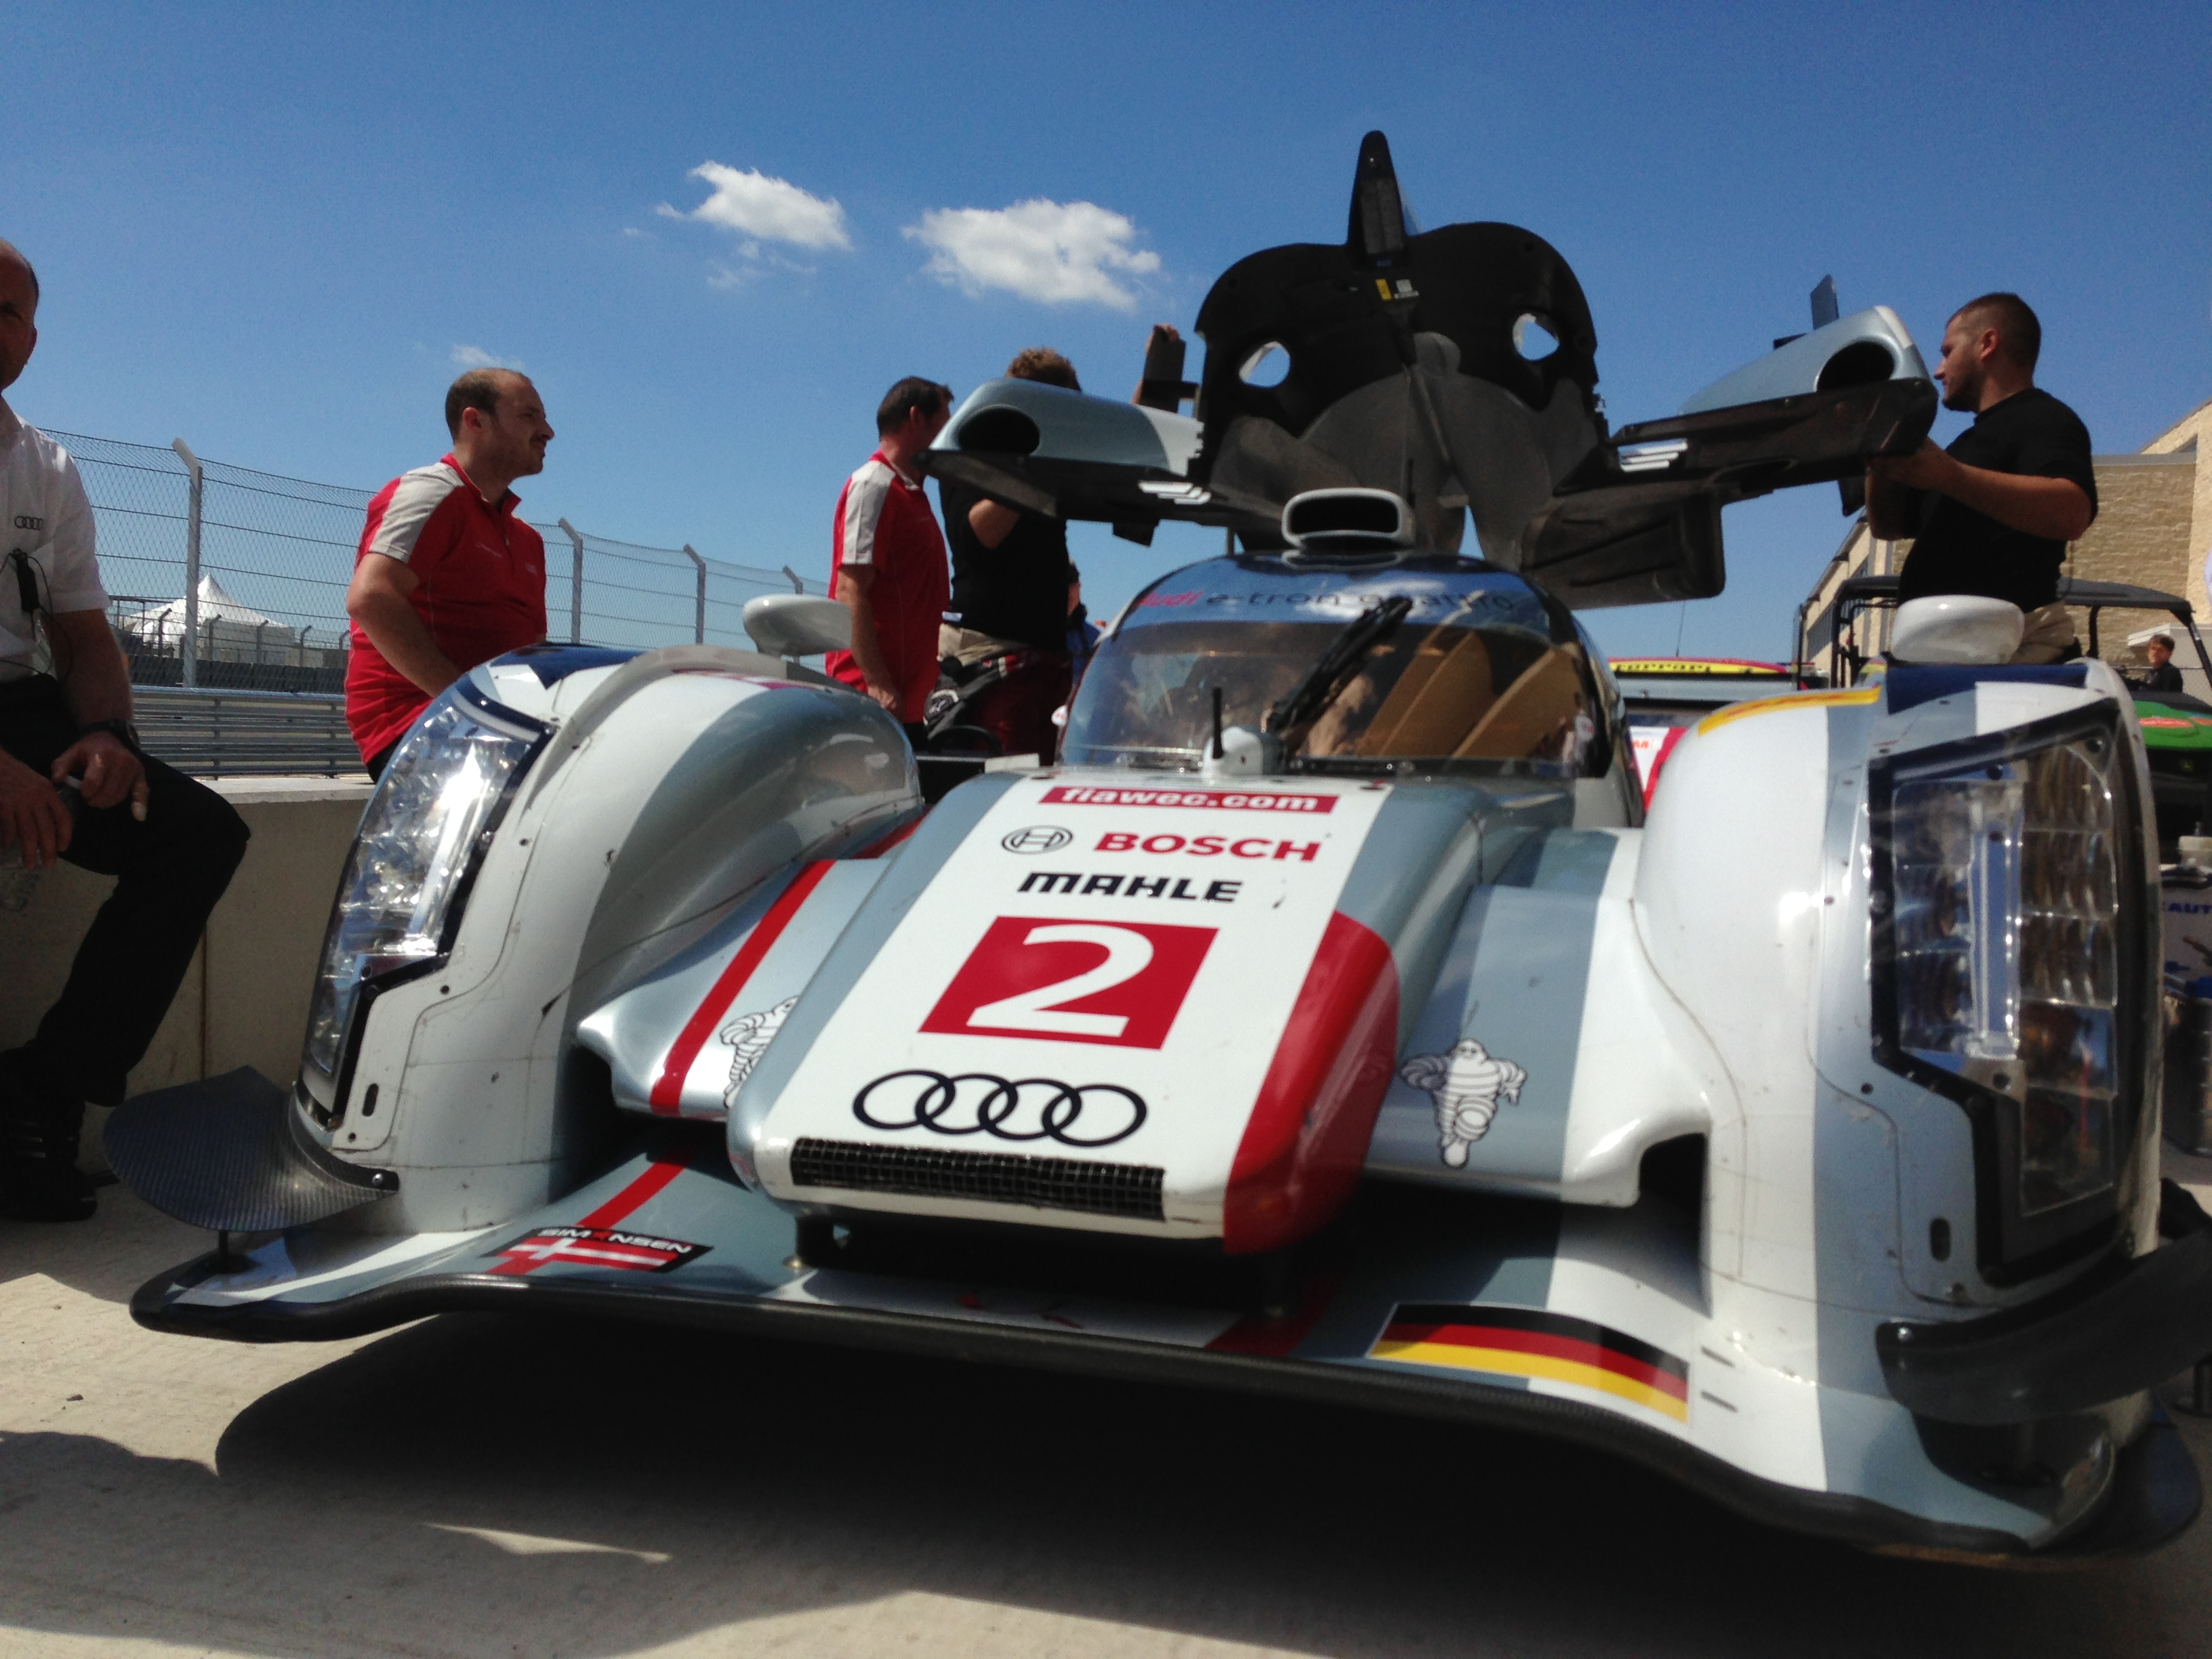 One of Audi's LMP1 entries, the R18 e-tron quattro, in pit lane